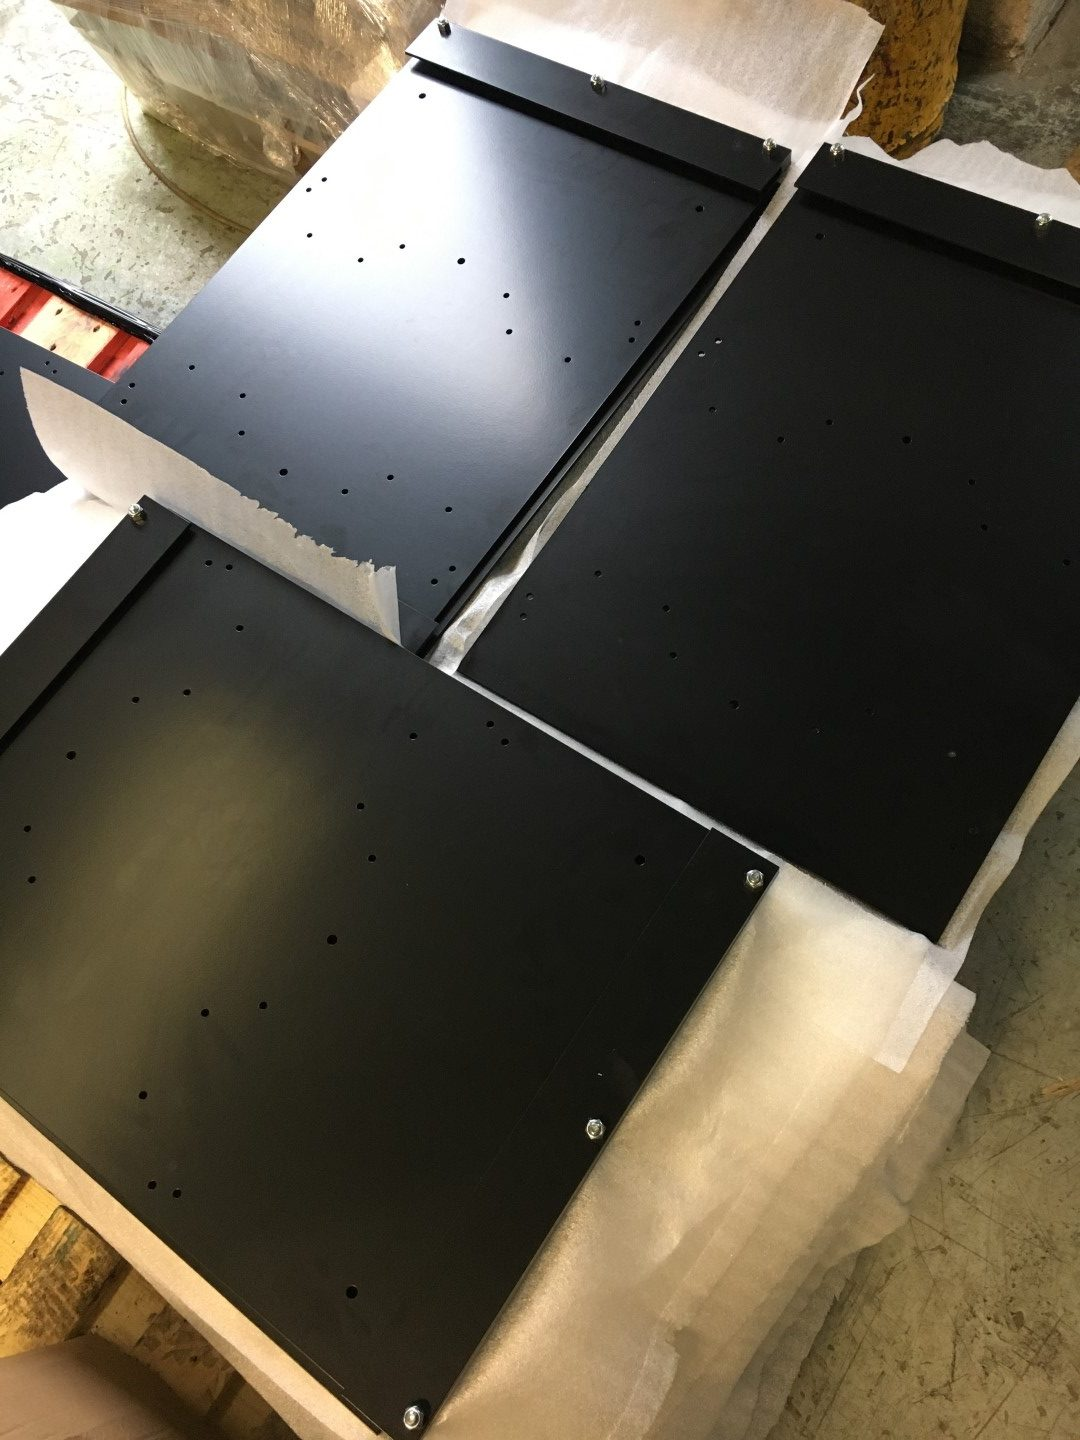 Charger Mount Plates and Balancer Mount Plates